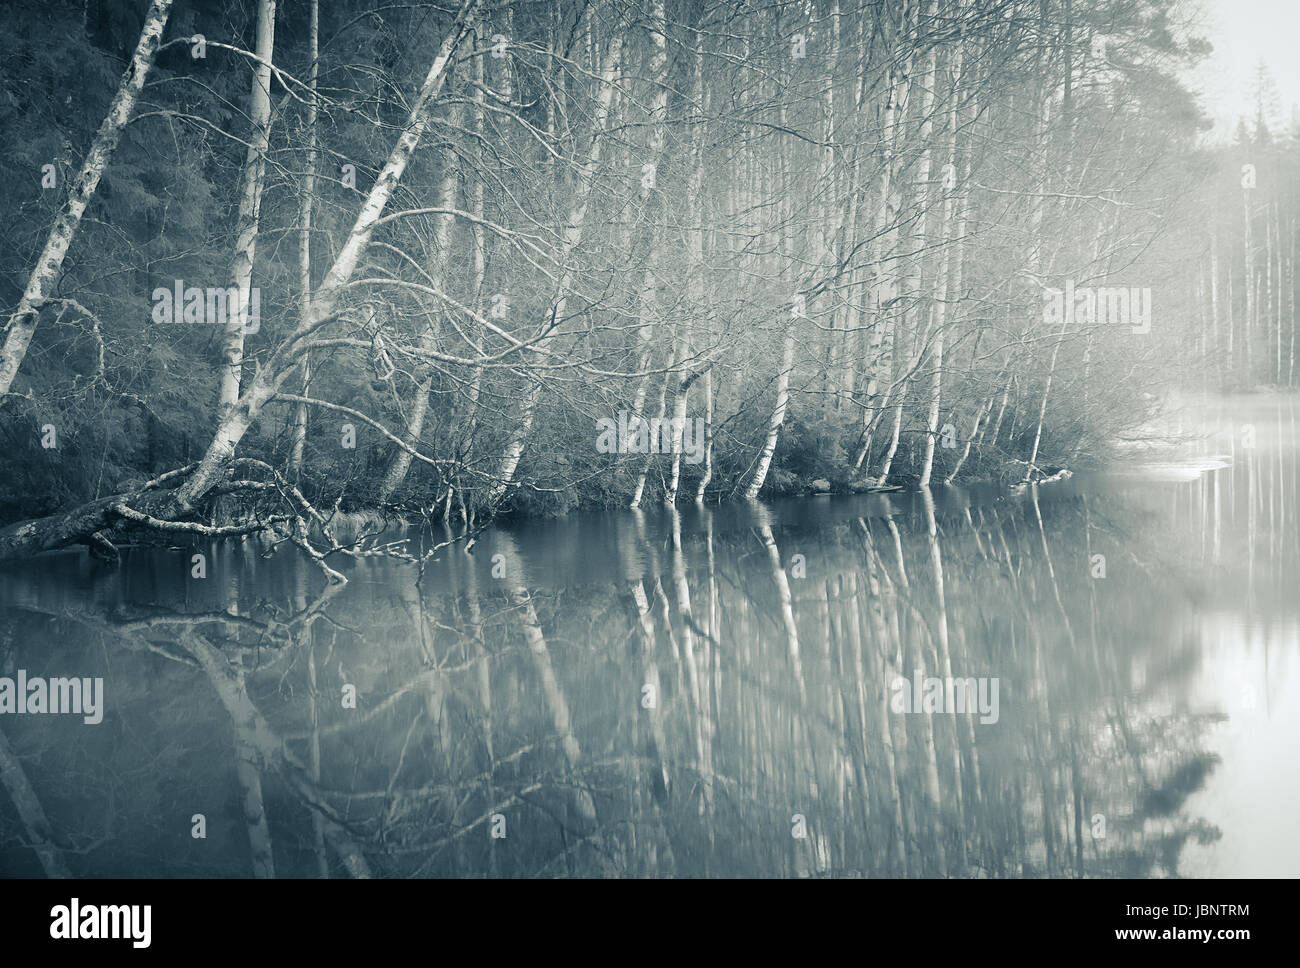 Foggy landscape with gloomy mood and lake at toned photo - Stock Image